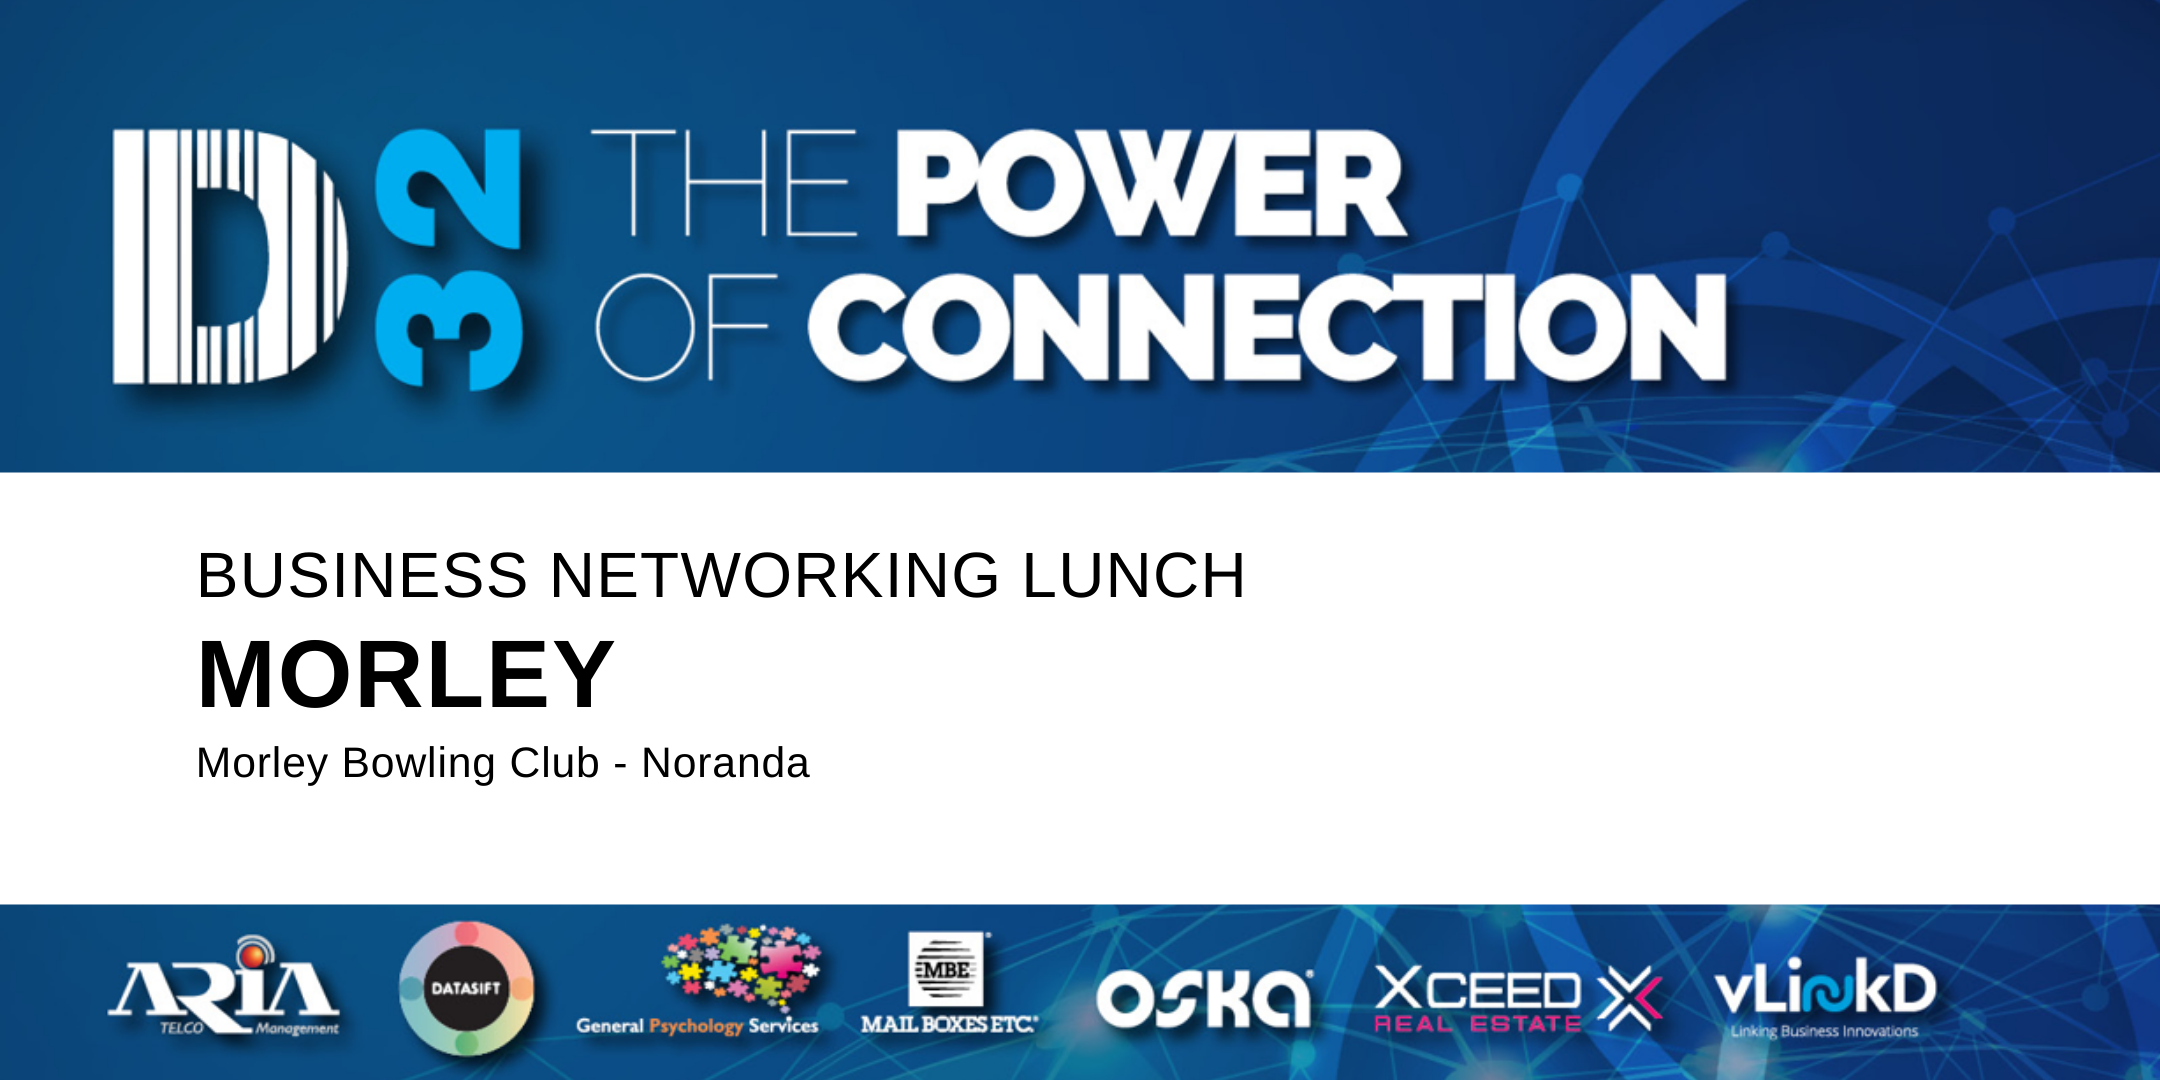 District32 Business Networking Perth – Morley (Noranda) - Wed 26th Feb